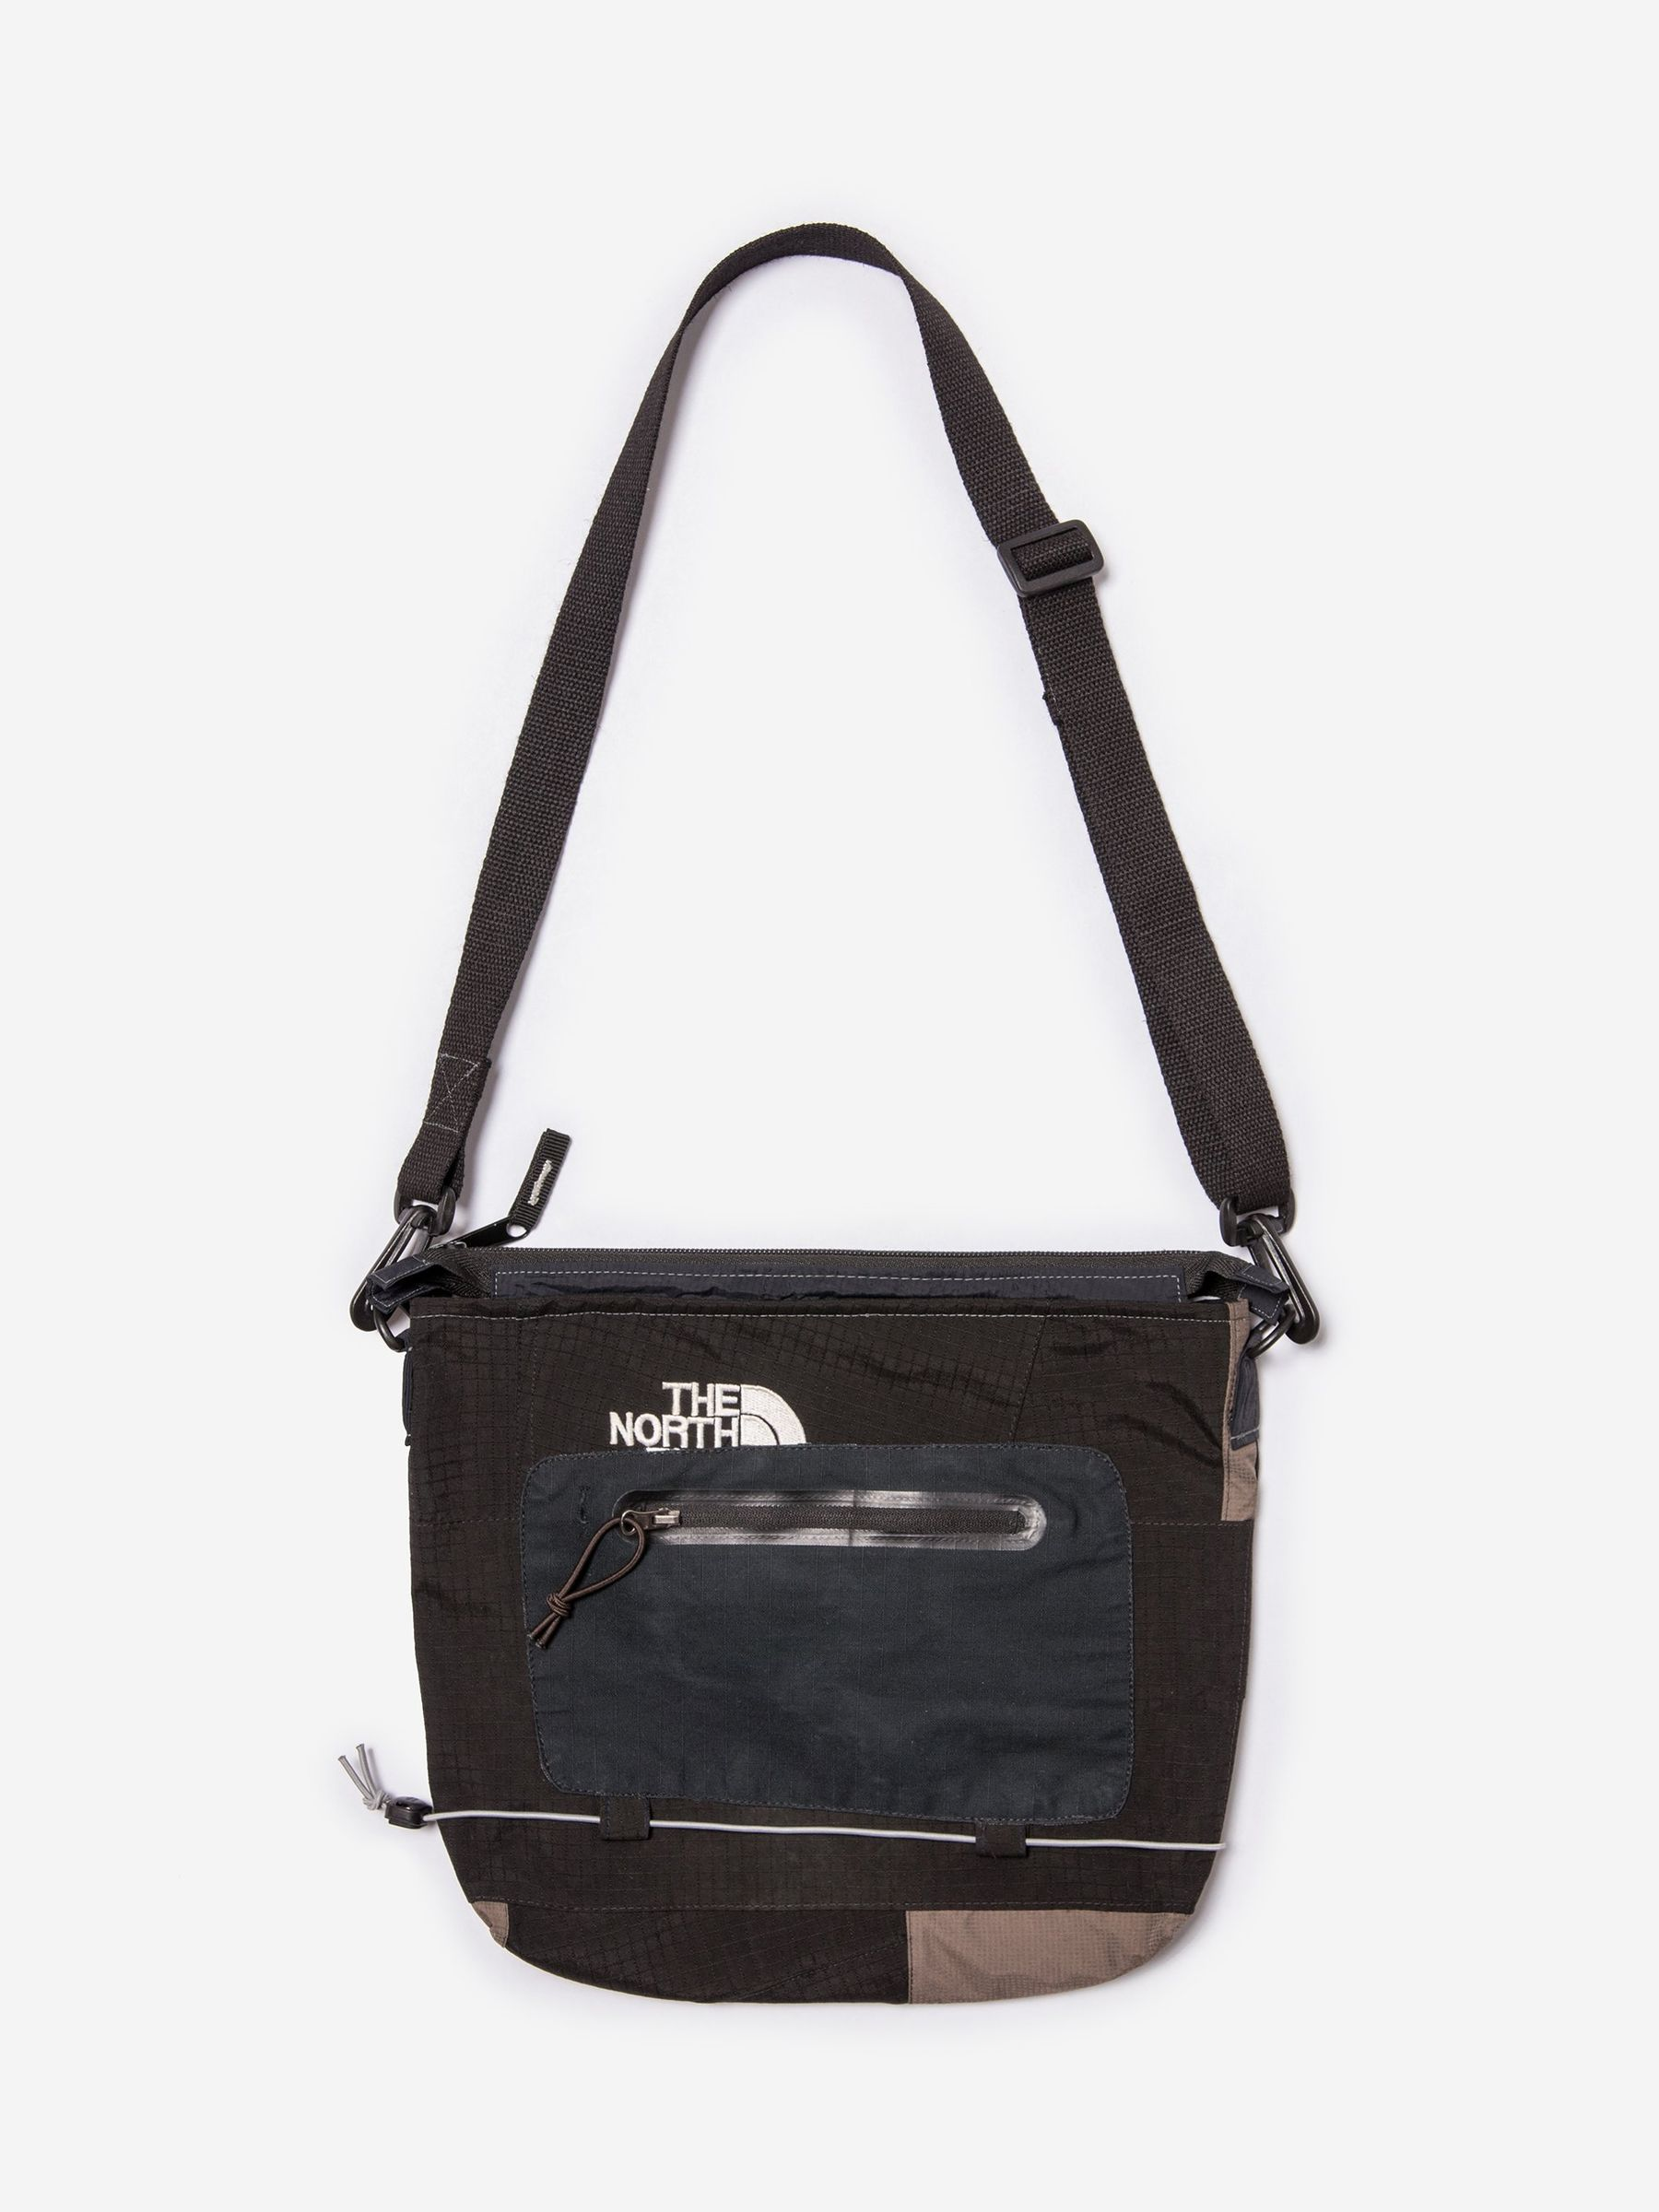 GREATER GOODS - Side Bag Multicolor - Image 6